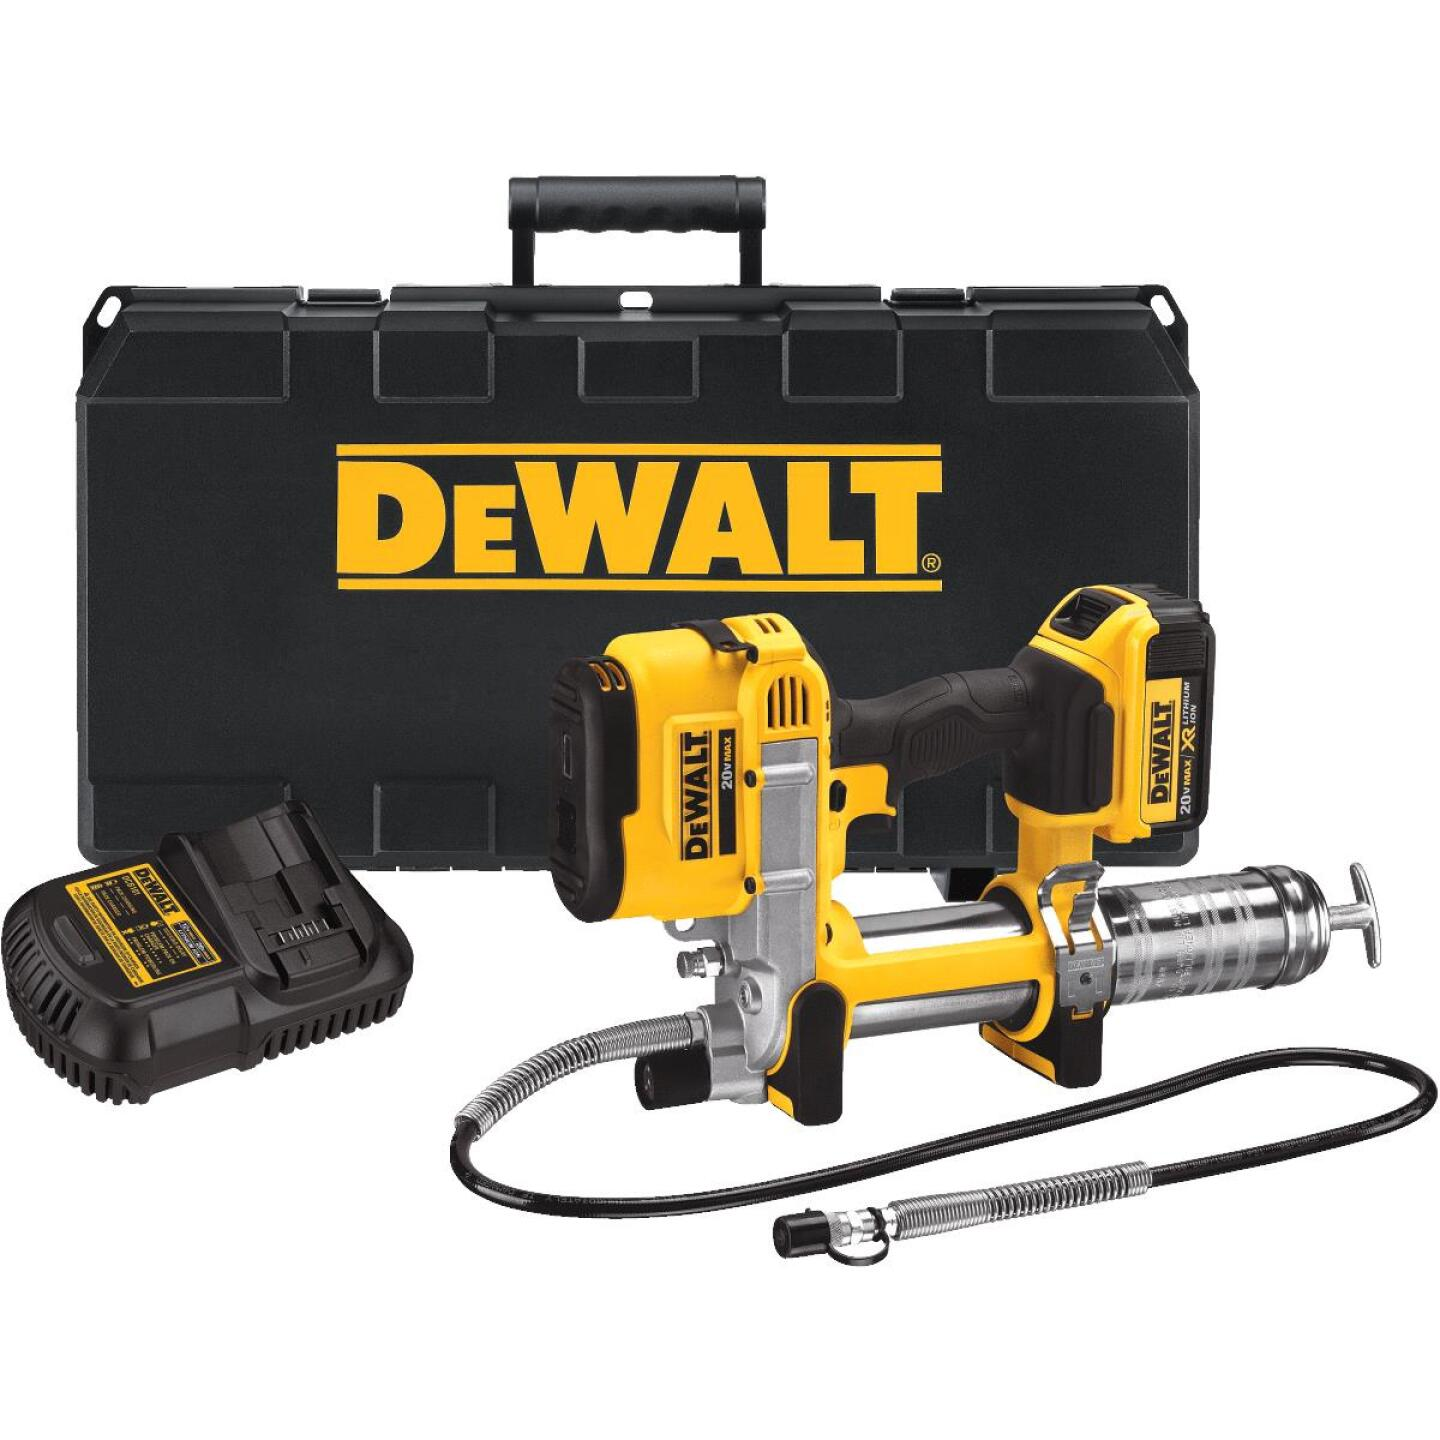 DeWalt 20 Volt MAX Lithium-Ion Cordless Grease Gun Kit Image 2